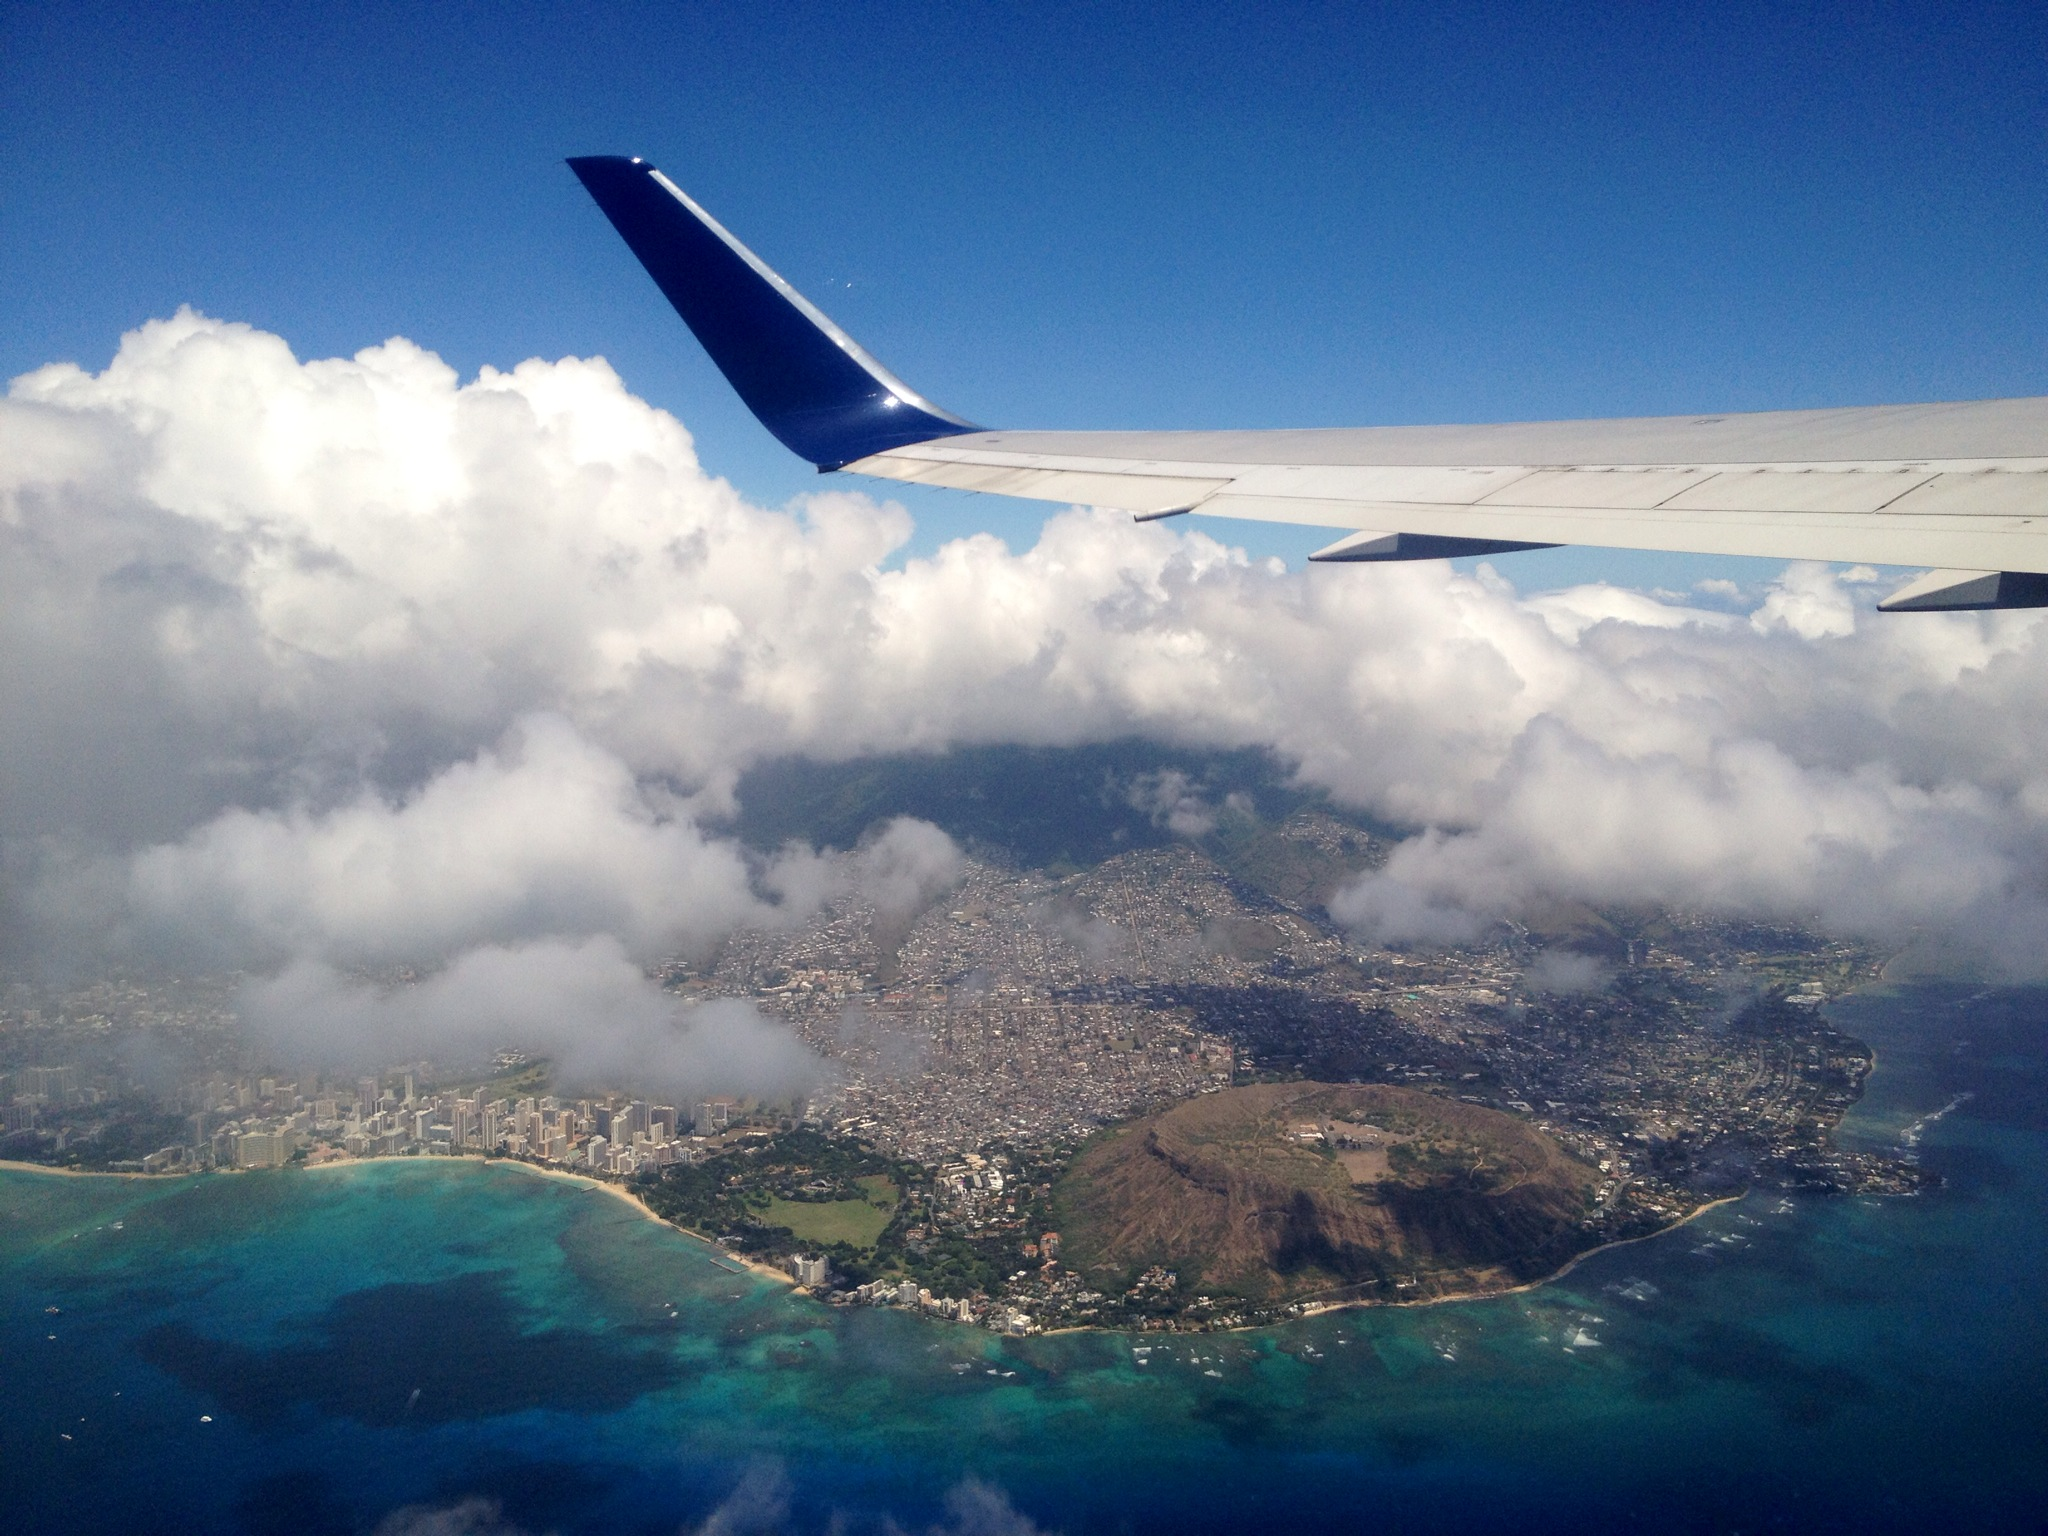 A quick look back to Waikiki and Diamond Head